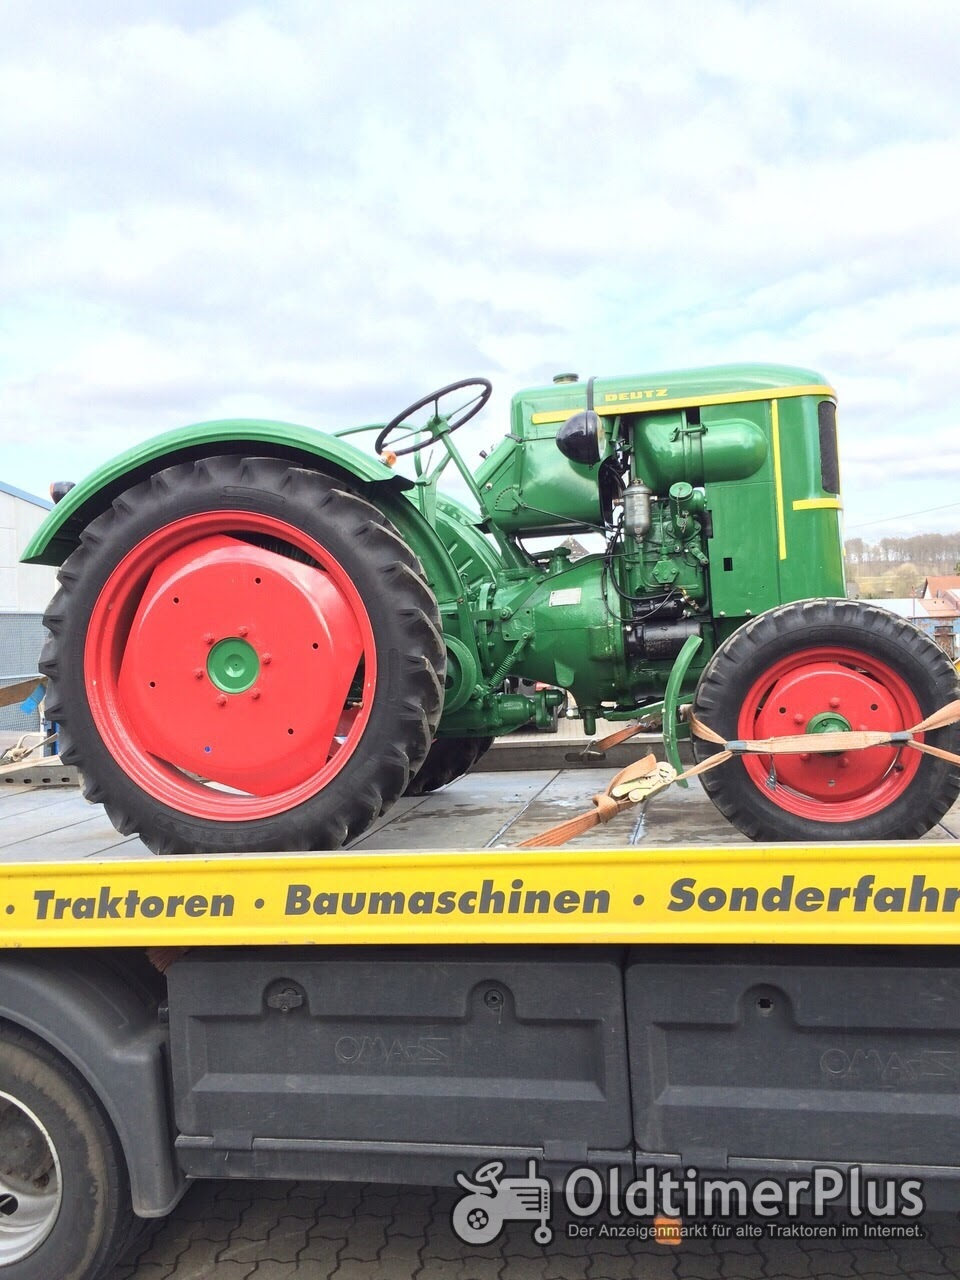 Traktortransporte Treckertransporte , Lanz Bulldog , Eicher , Porsche , Hanomag , IHC , Fendt , Deutz , Eicher Foto 5